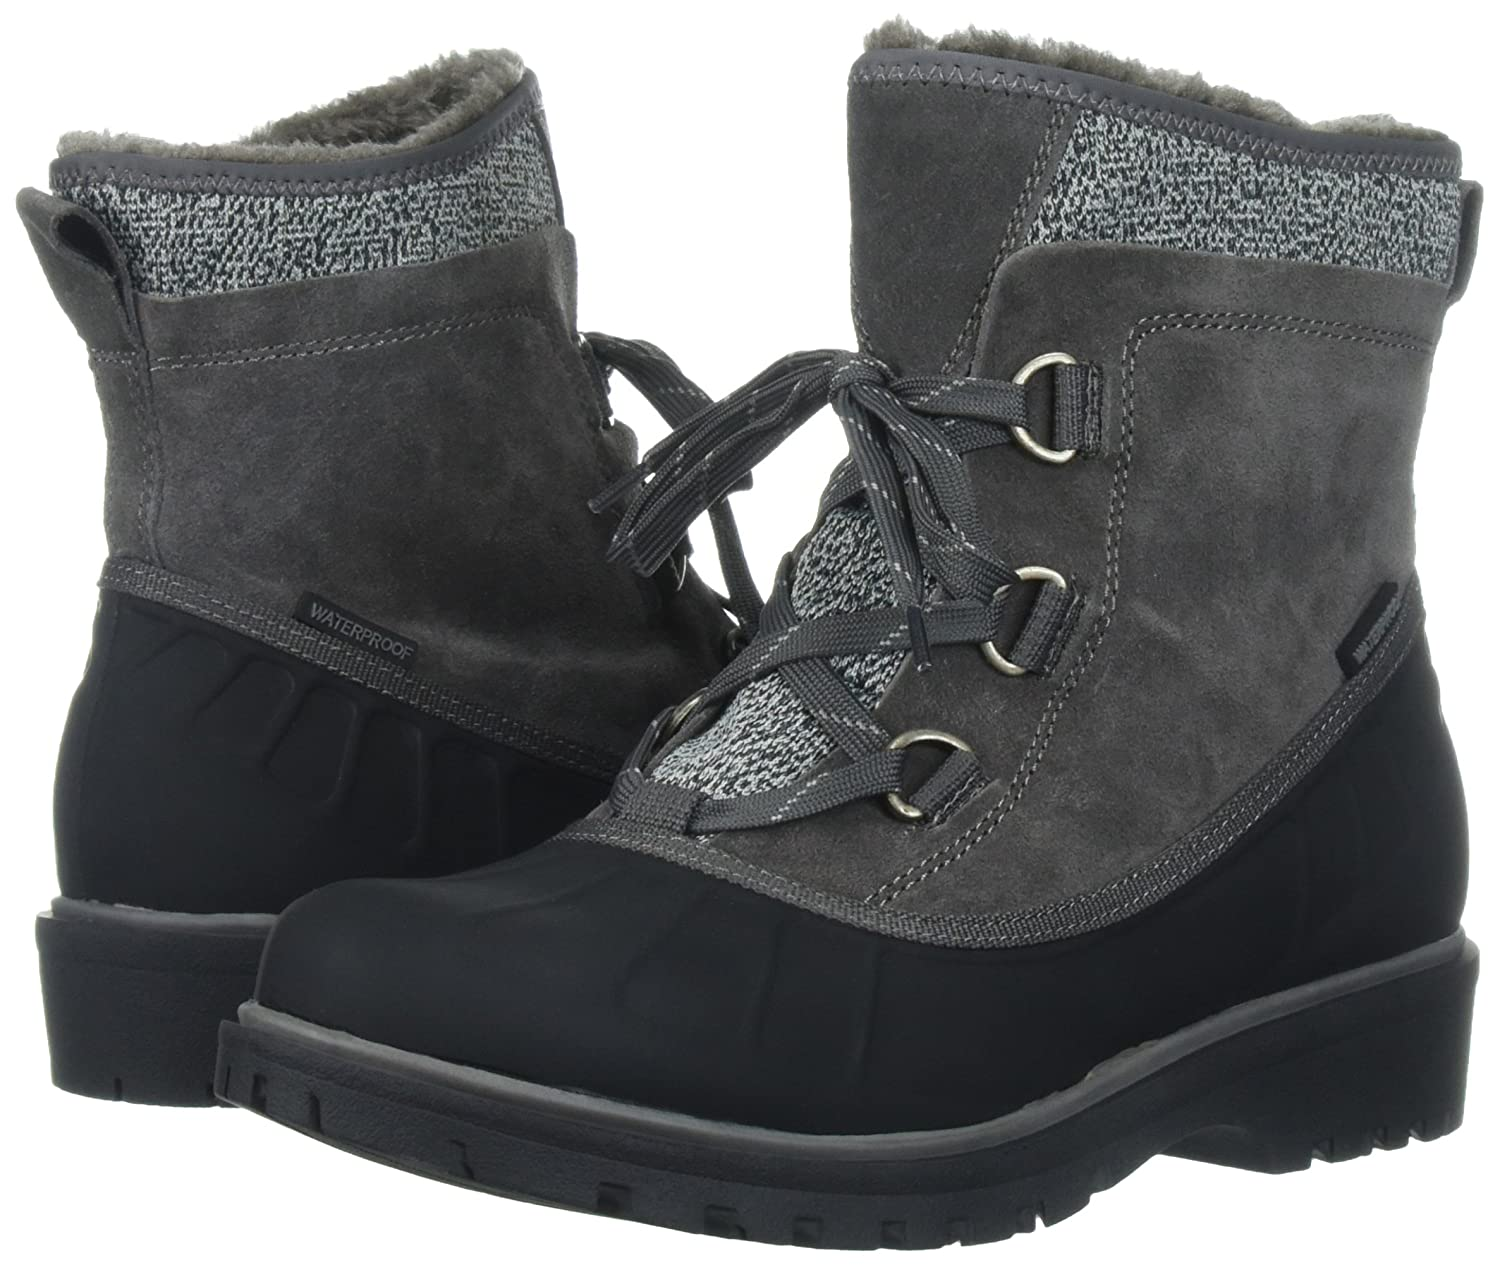 BareTraps Women's Silita Snow Boot US|Gunmetal B071NP51XV 8 B(M) US|Gunmetal Boot 34237d